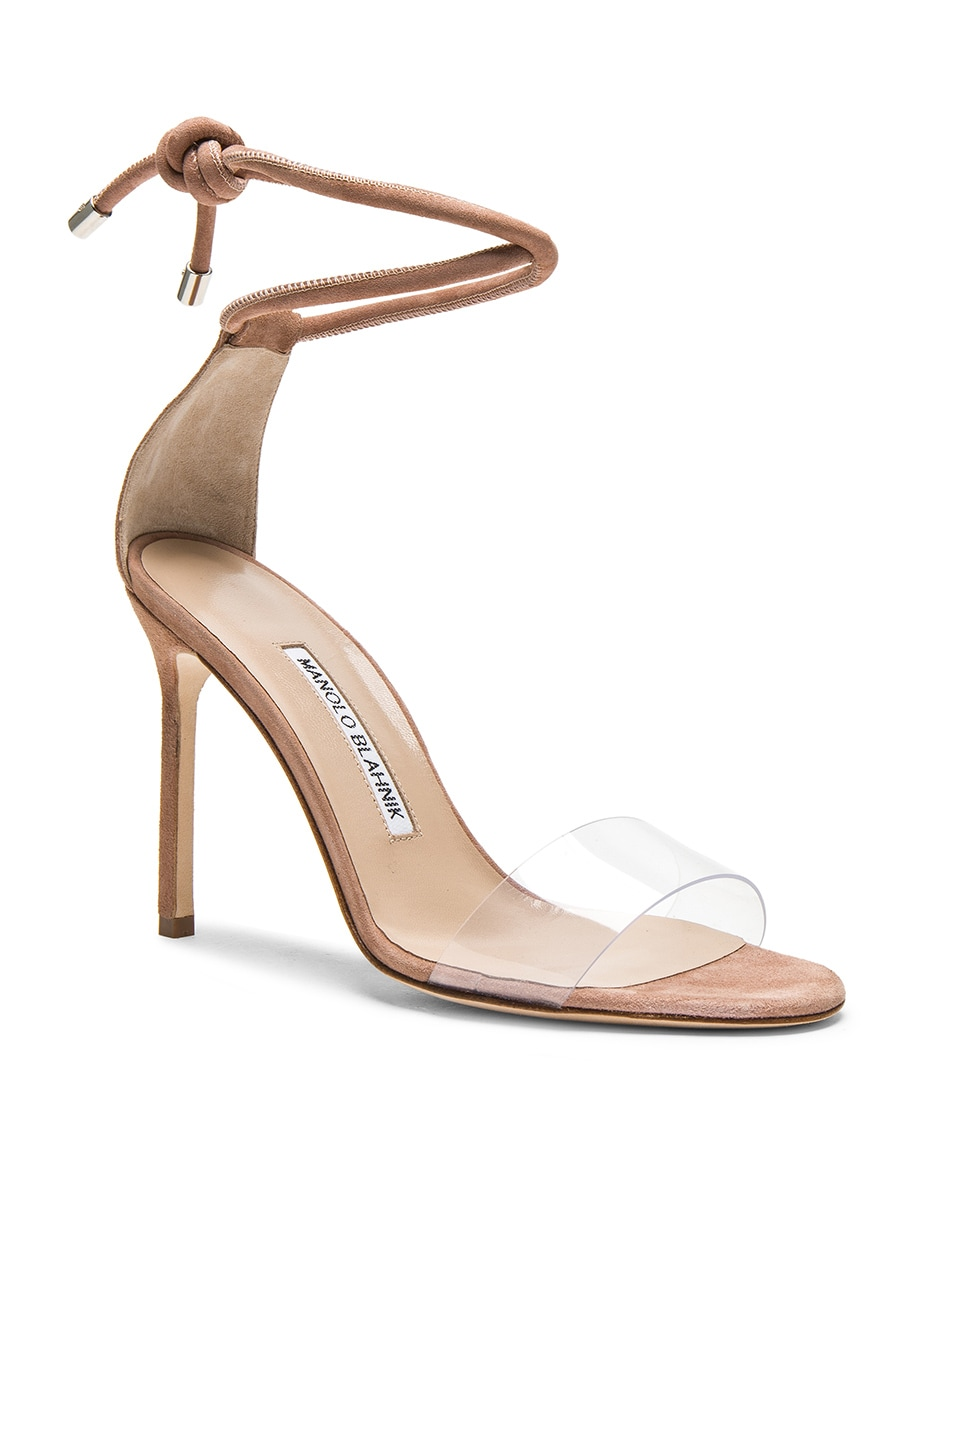 6b7873dda564 Image 2 of Manolo Blahnik 105 Suede Estro Sandals in Rose Nude Suede